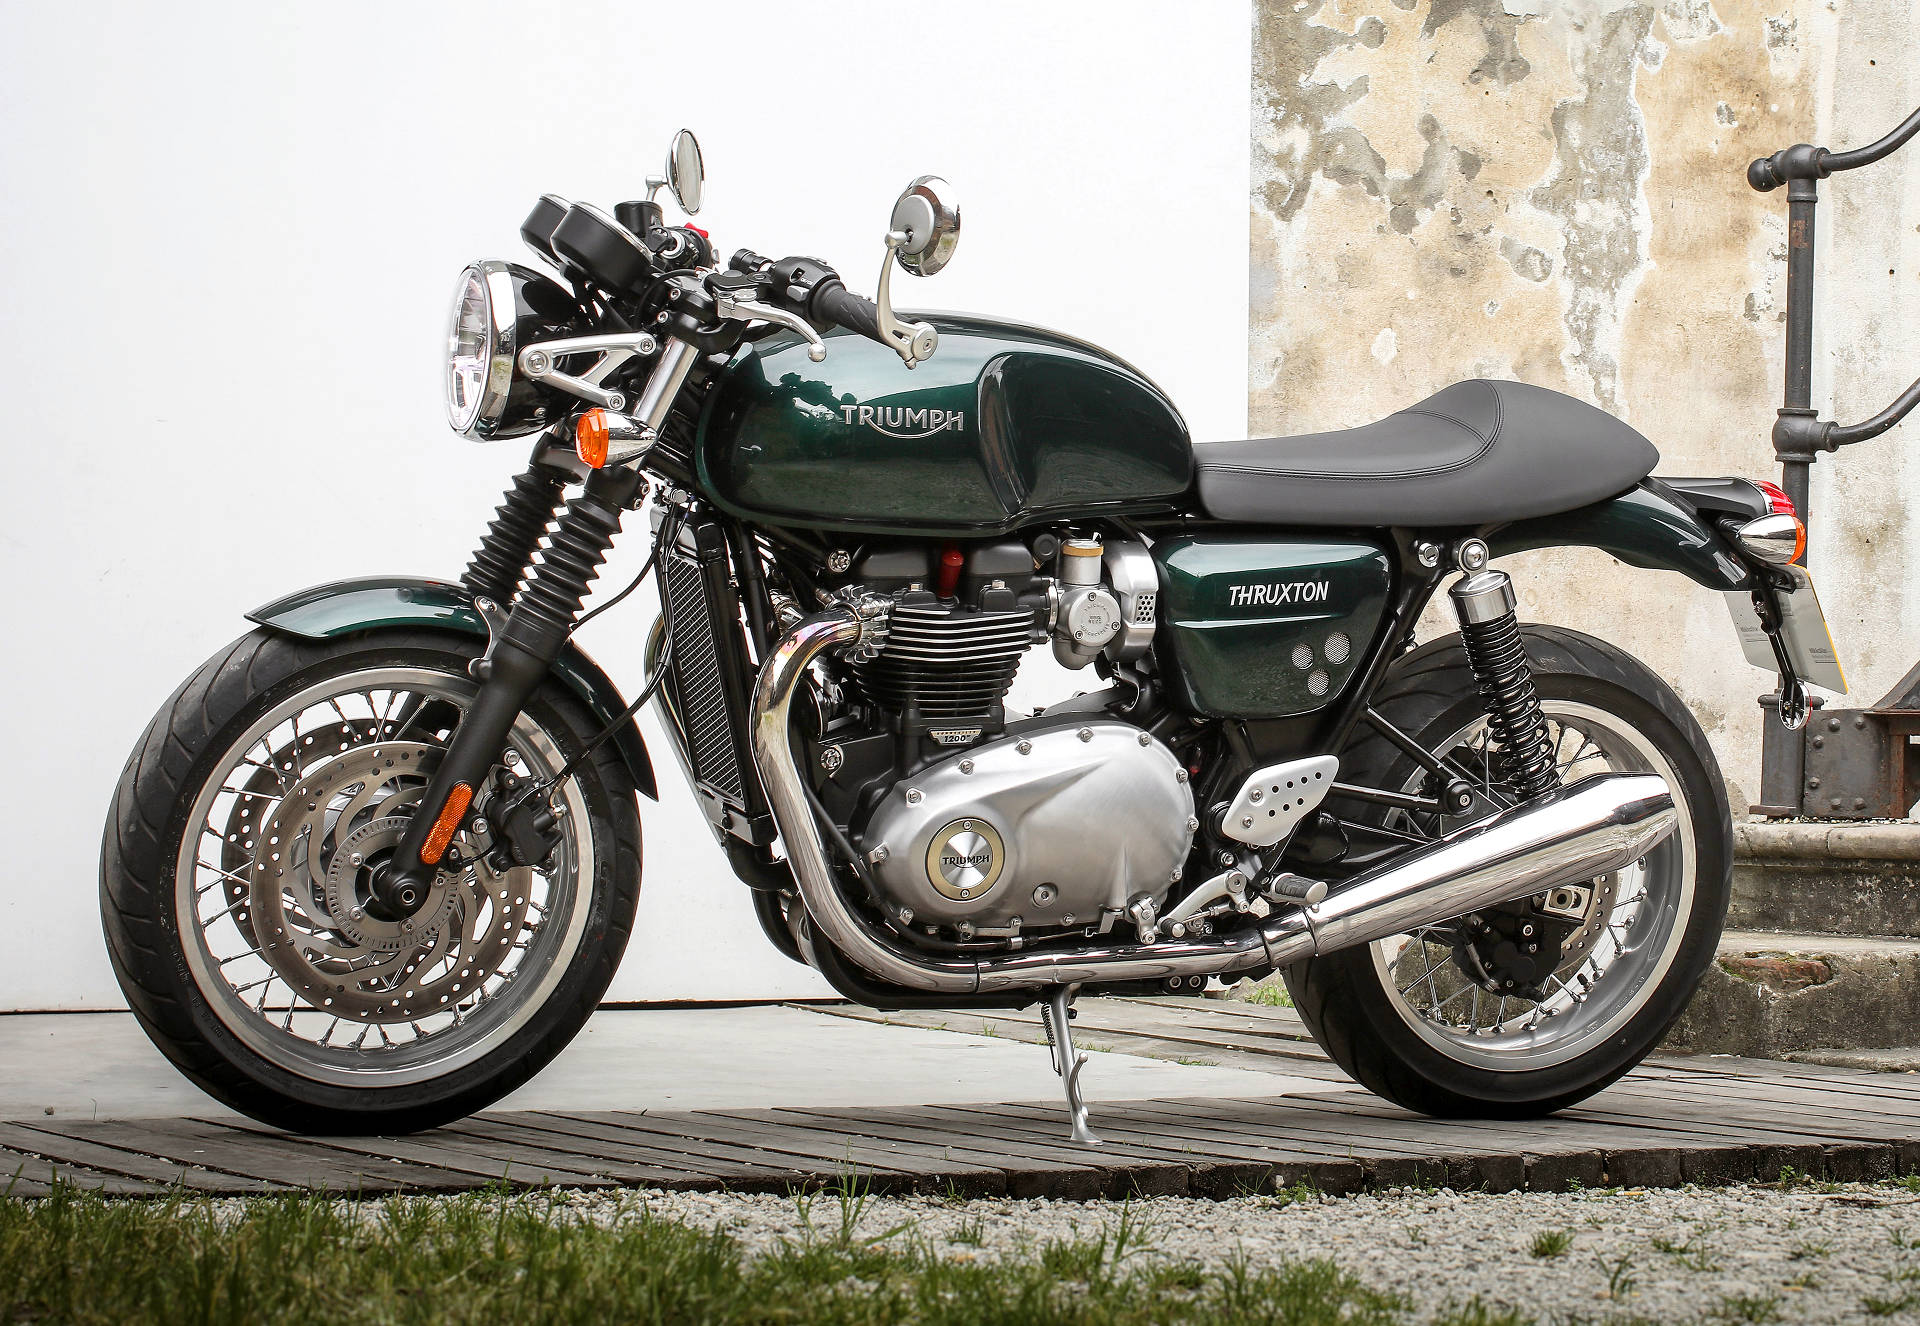 Triumph Finally Releases Full Specs For Thruxton And Thruxton R